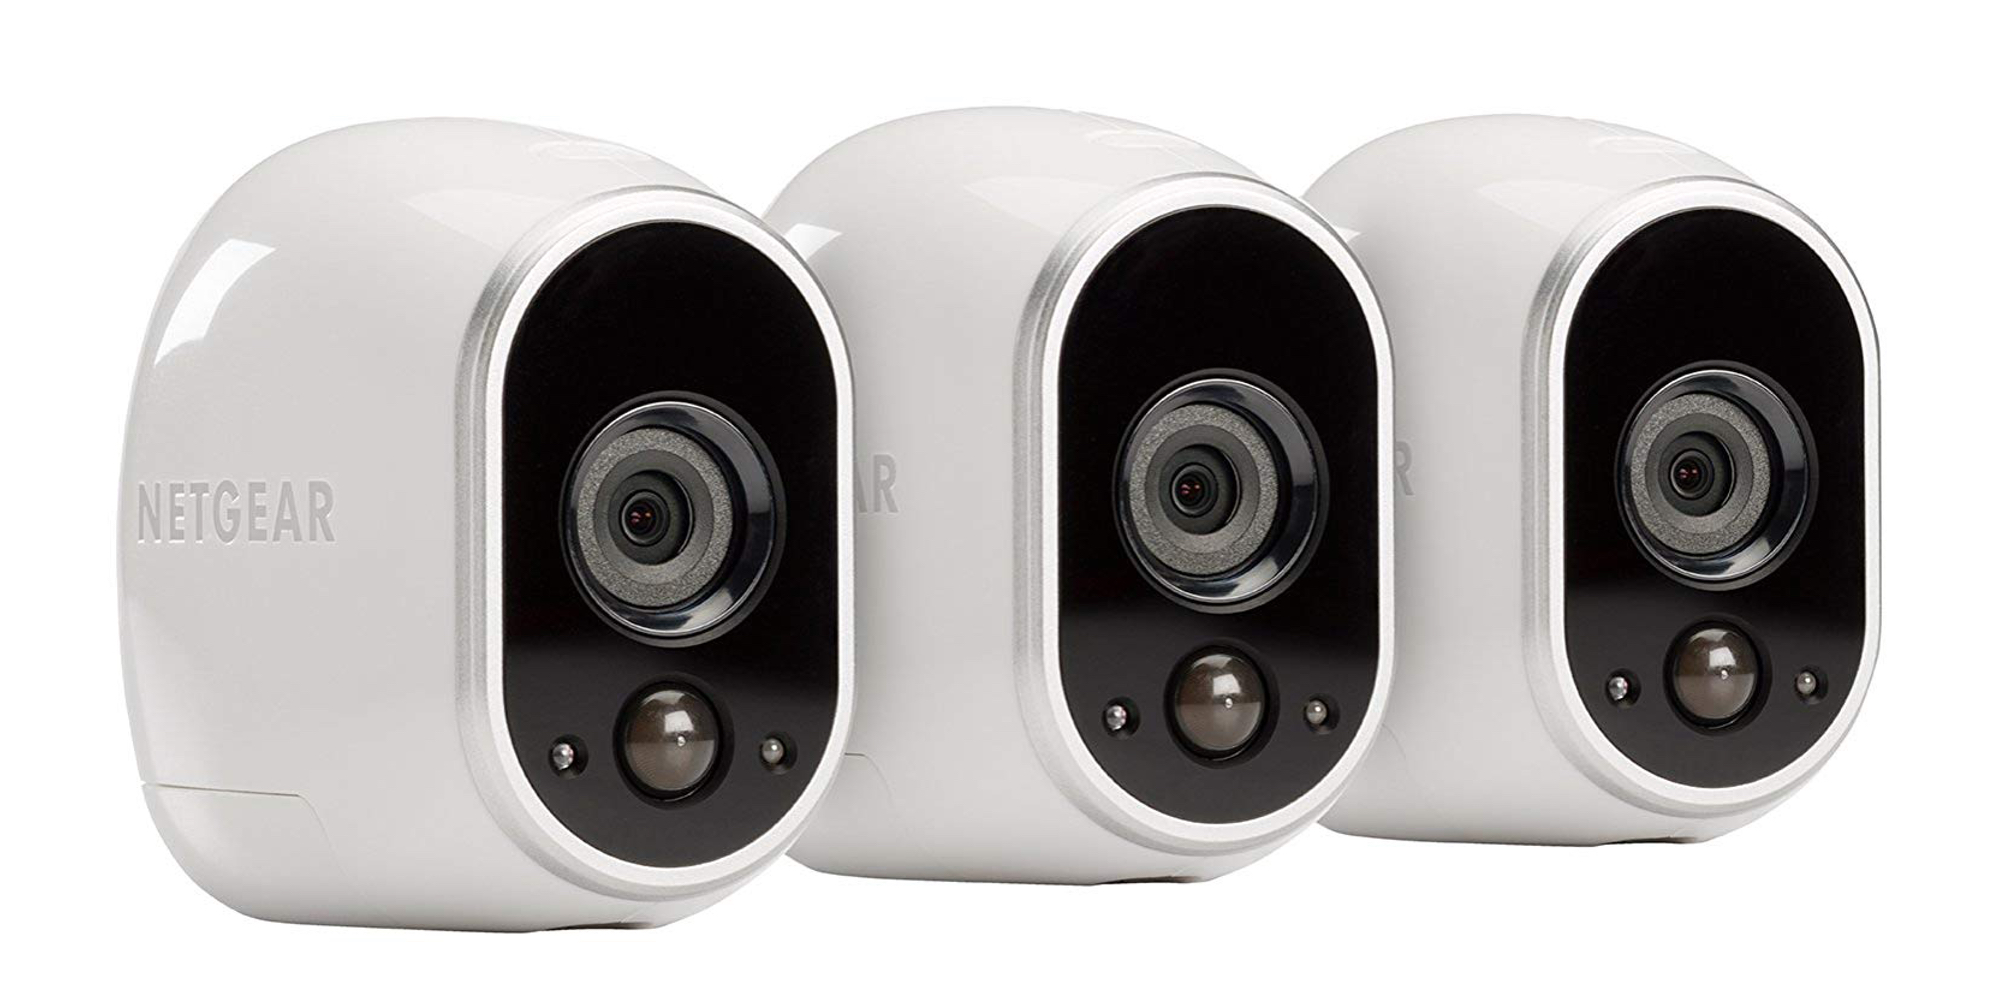 Arlo S Security System Includes Three 720p Cameras At 190